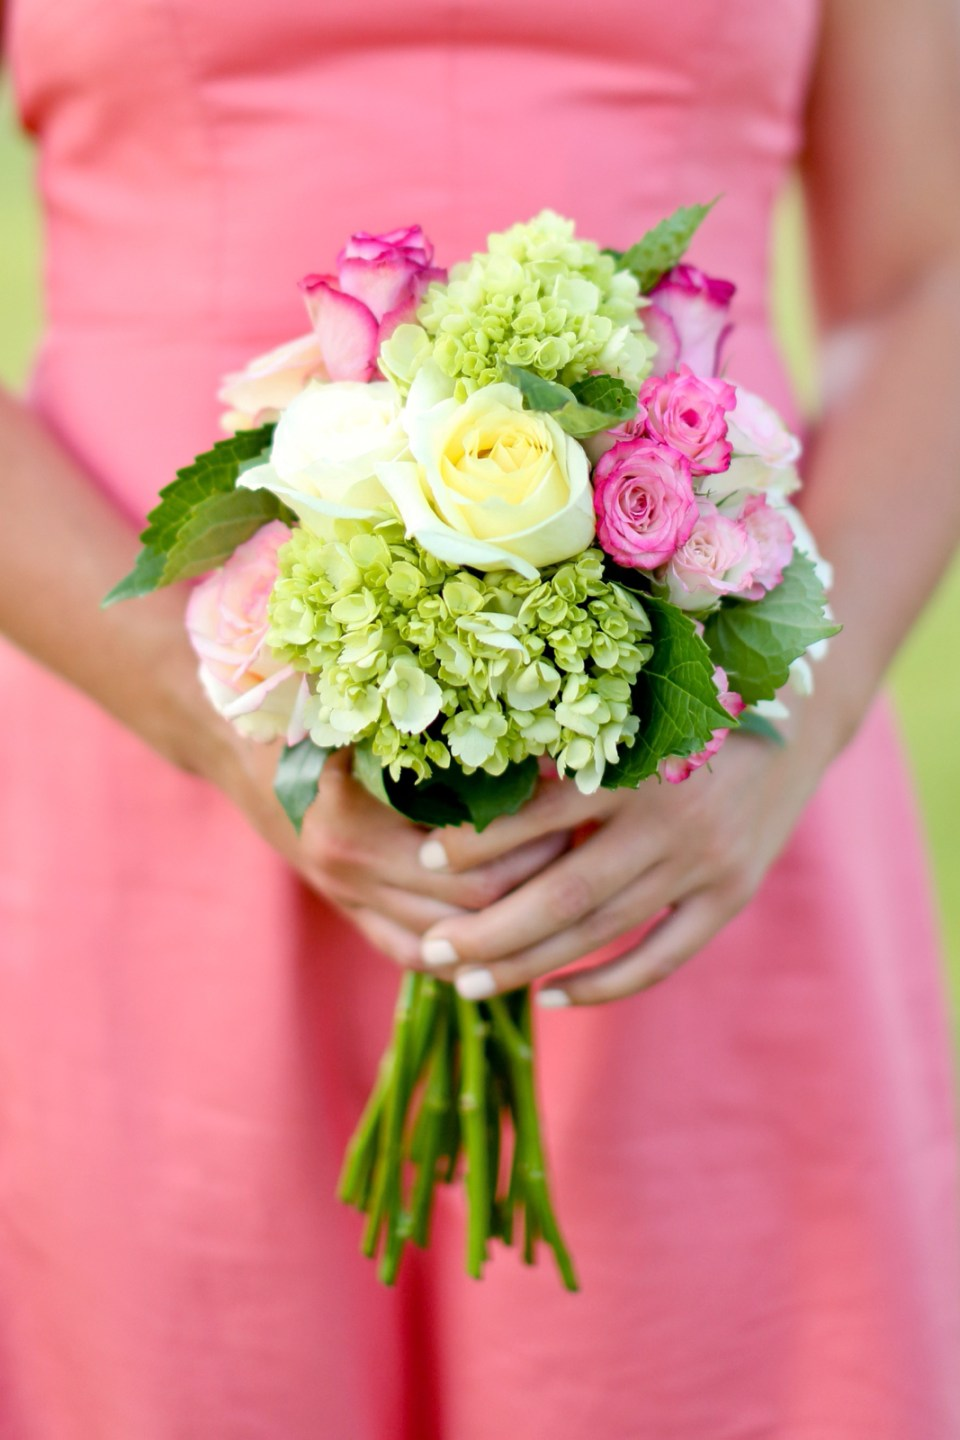 Wedding-Bouquet-Inspiration-Flowers-Bridal-Bridesmaids389